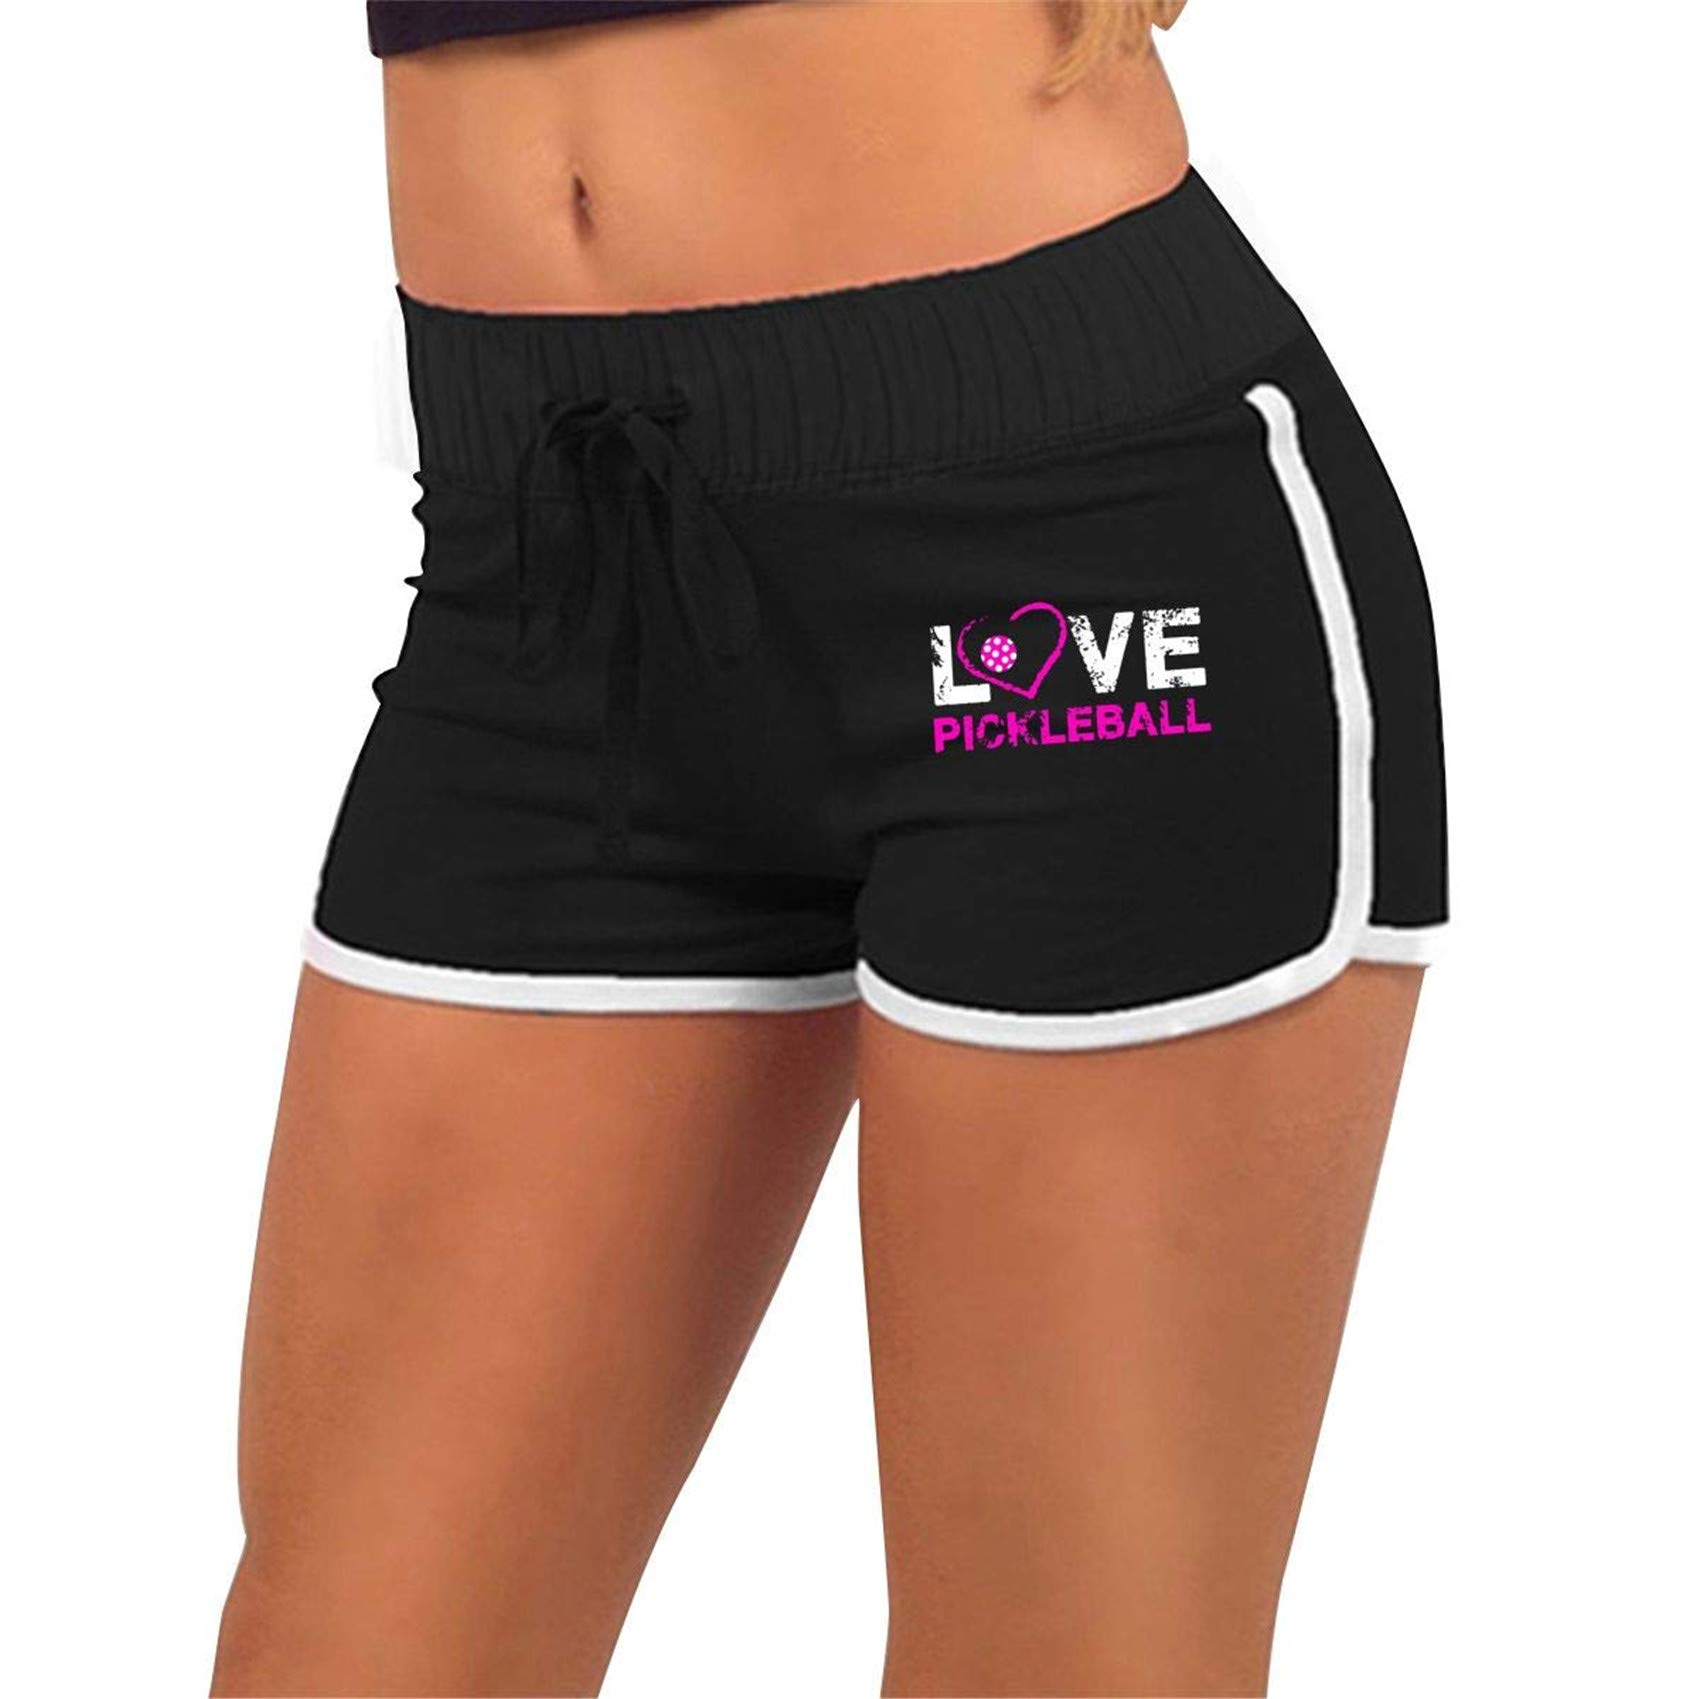 Love Pickleball,Running Workout Shorts Pants with Athletic Elastic Waist Womens Sports Fitness Yoga Shorts